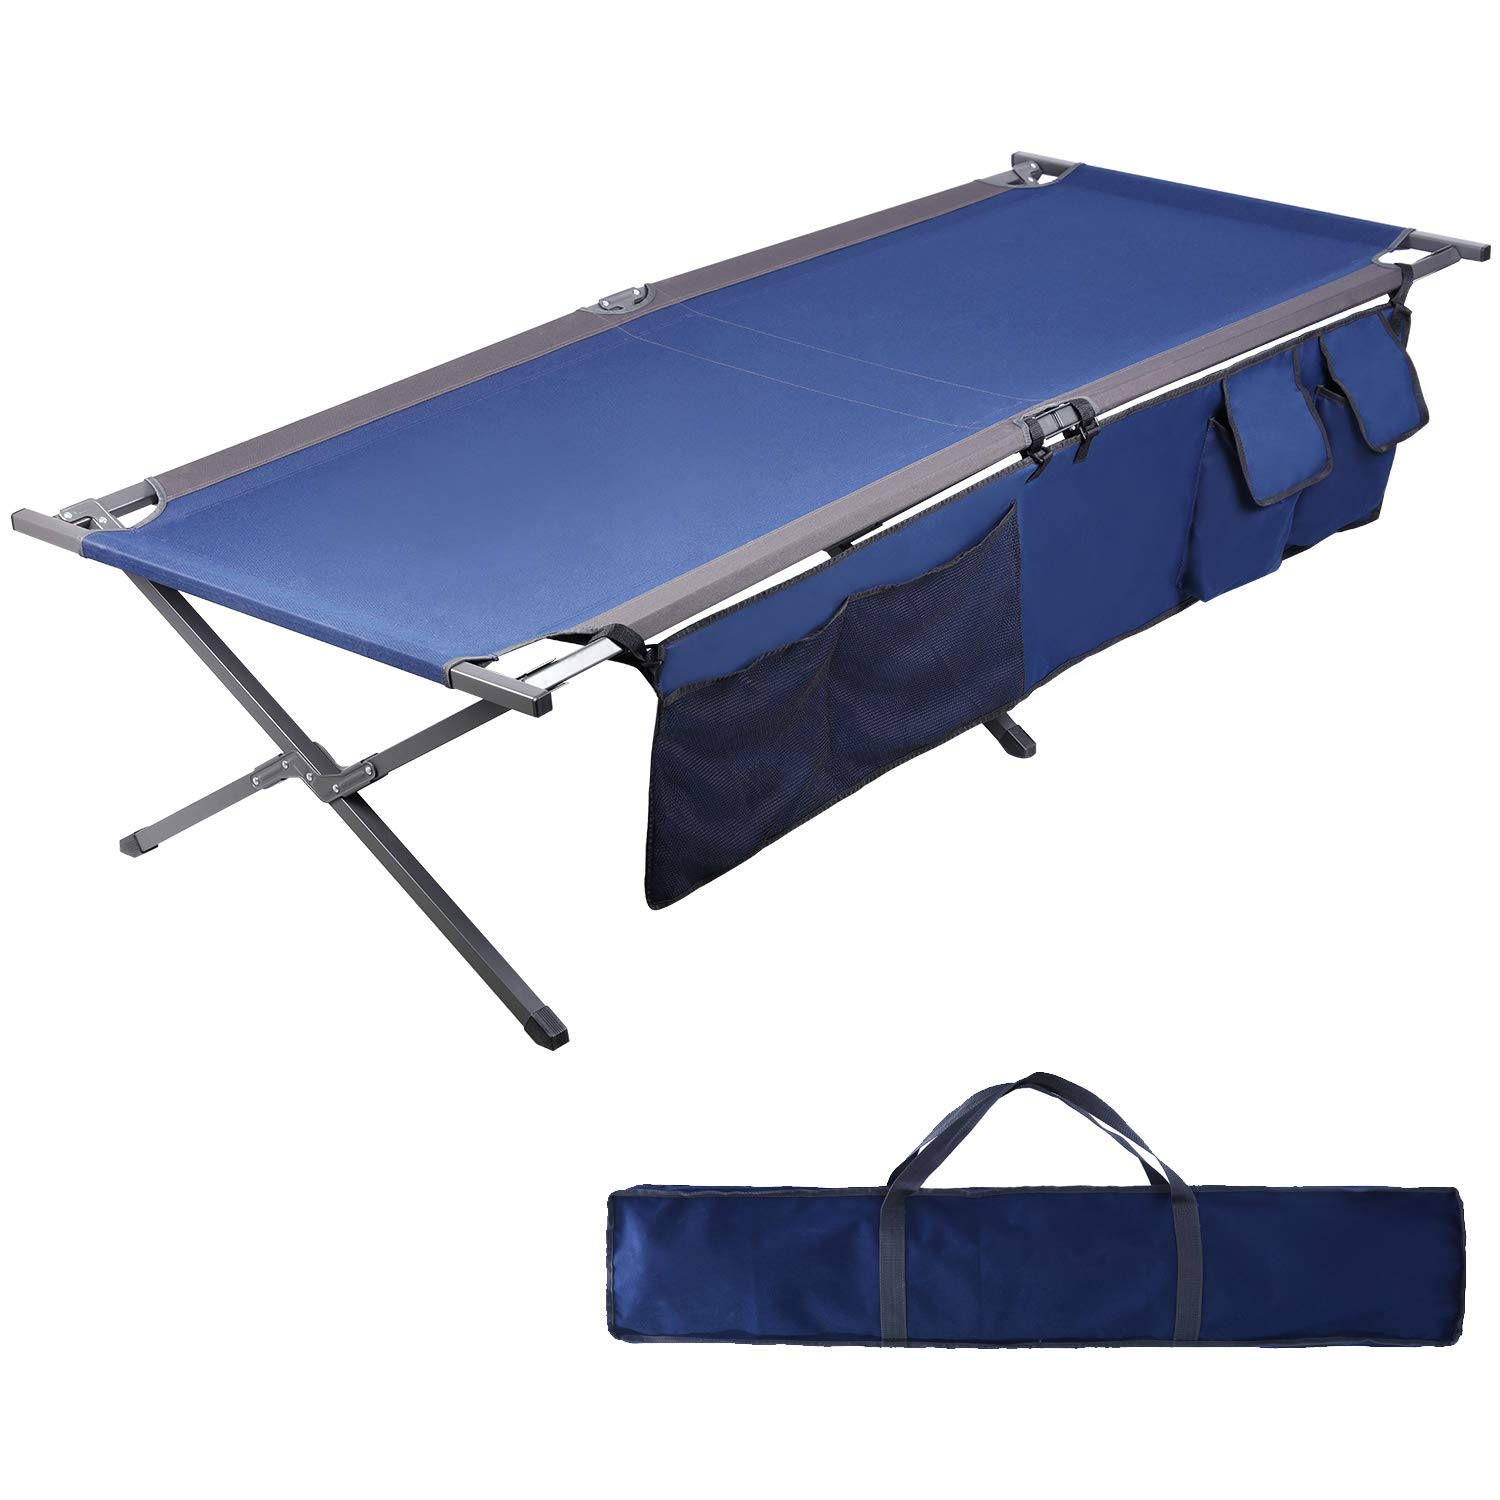 Carry Bag and Side Pockets Included PORTAL Folding Portable Camping Cot 83 XL Pack-Away Tent Sleeping Cot Bed with Side Pockets